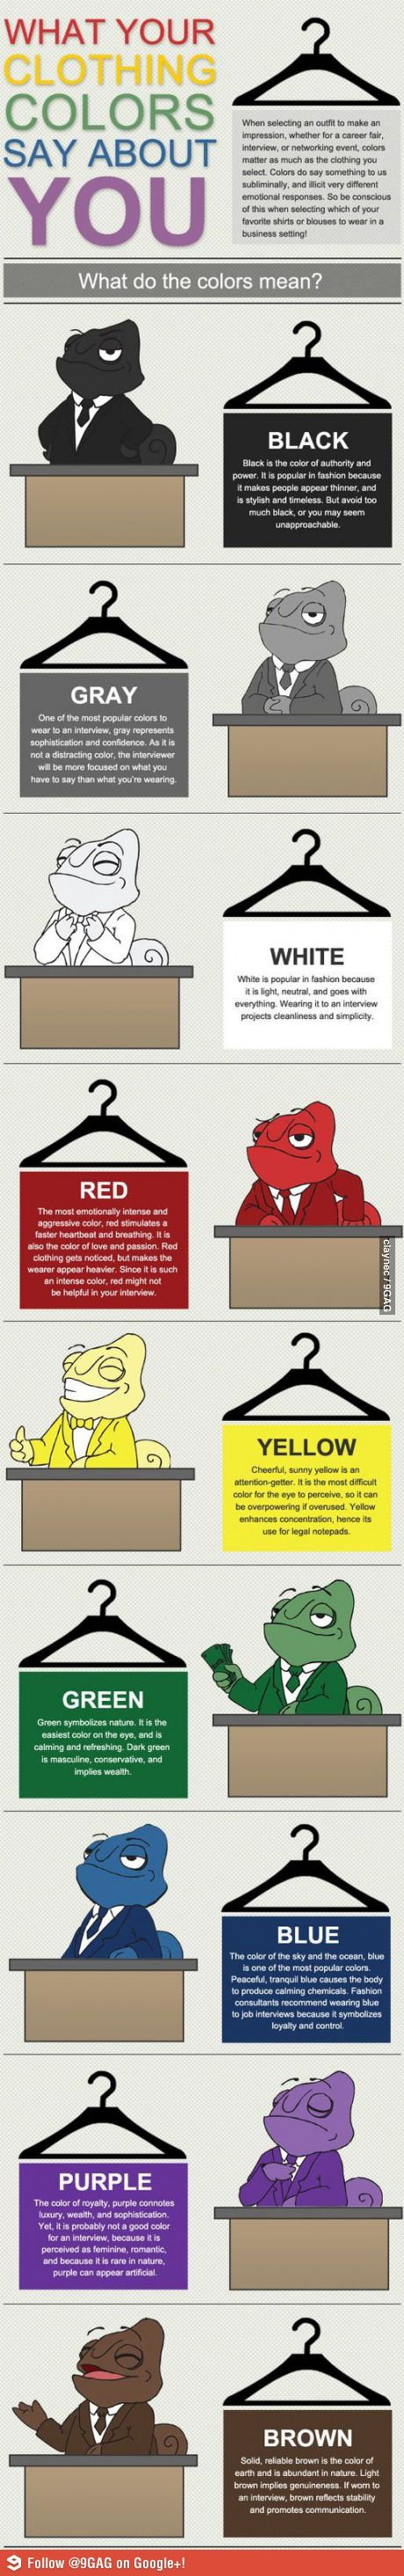 What colors say about you for an interview... Legit?